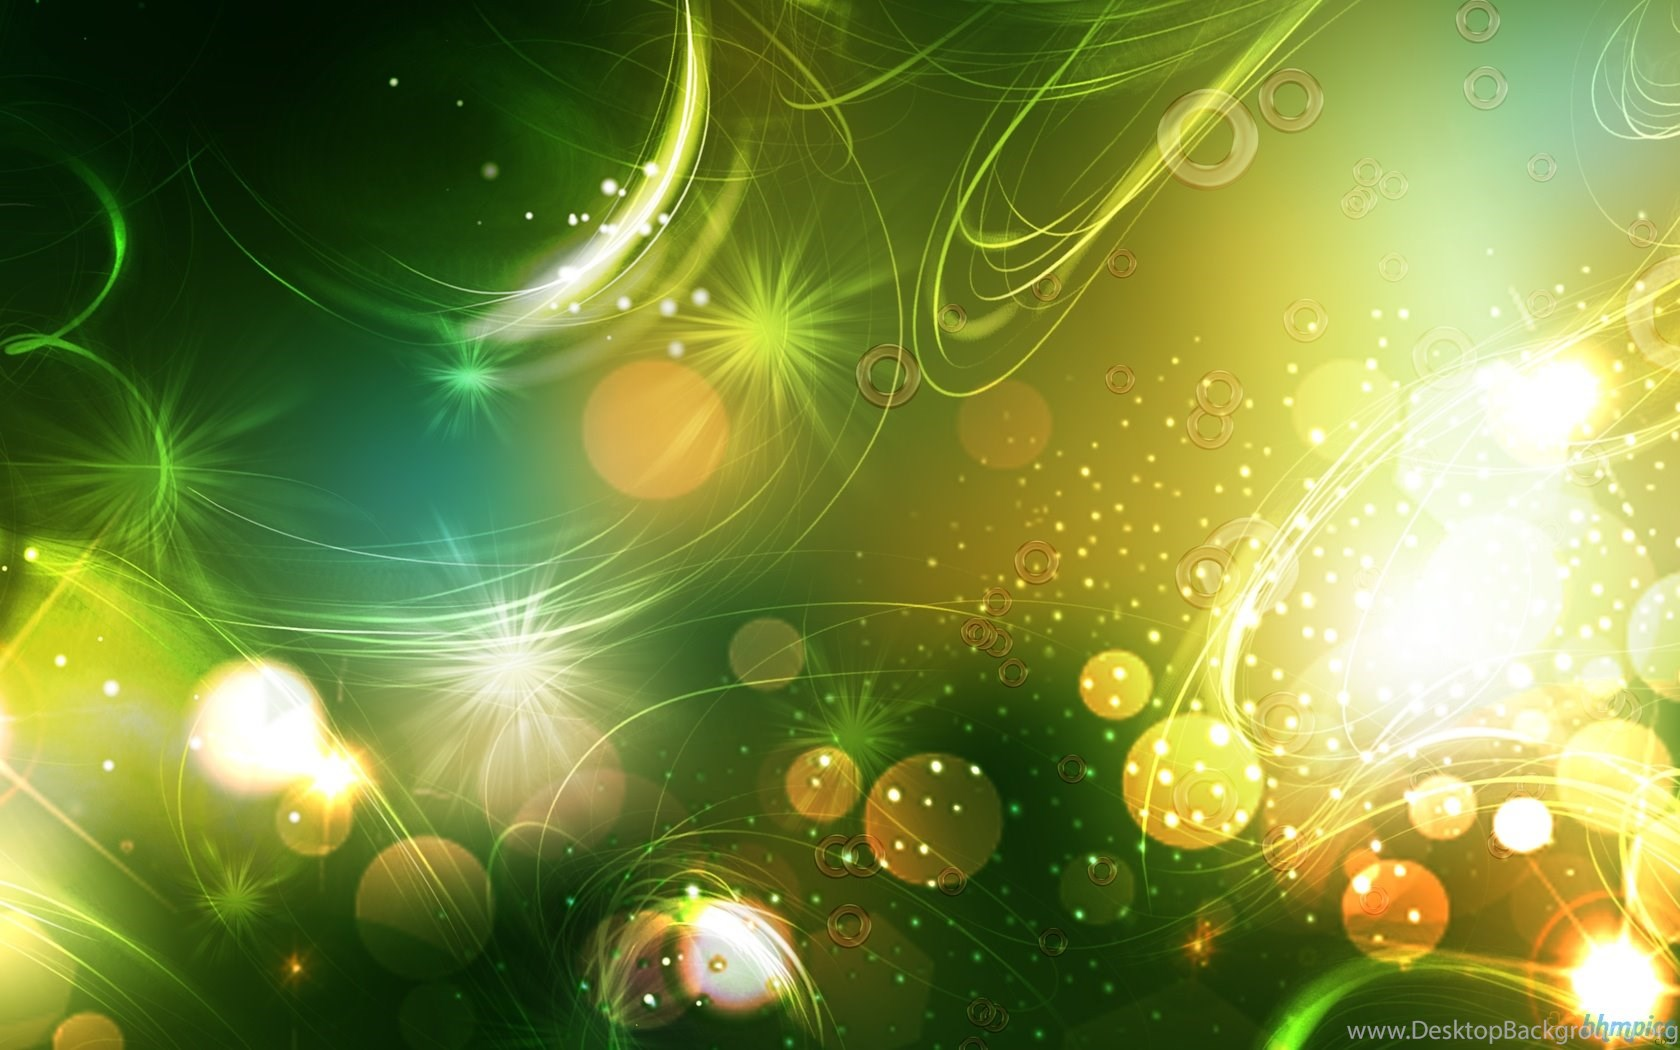 Green Christmas Backgrounds Hd Wallpapers Hd Wallpapers ...